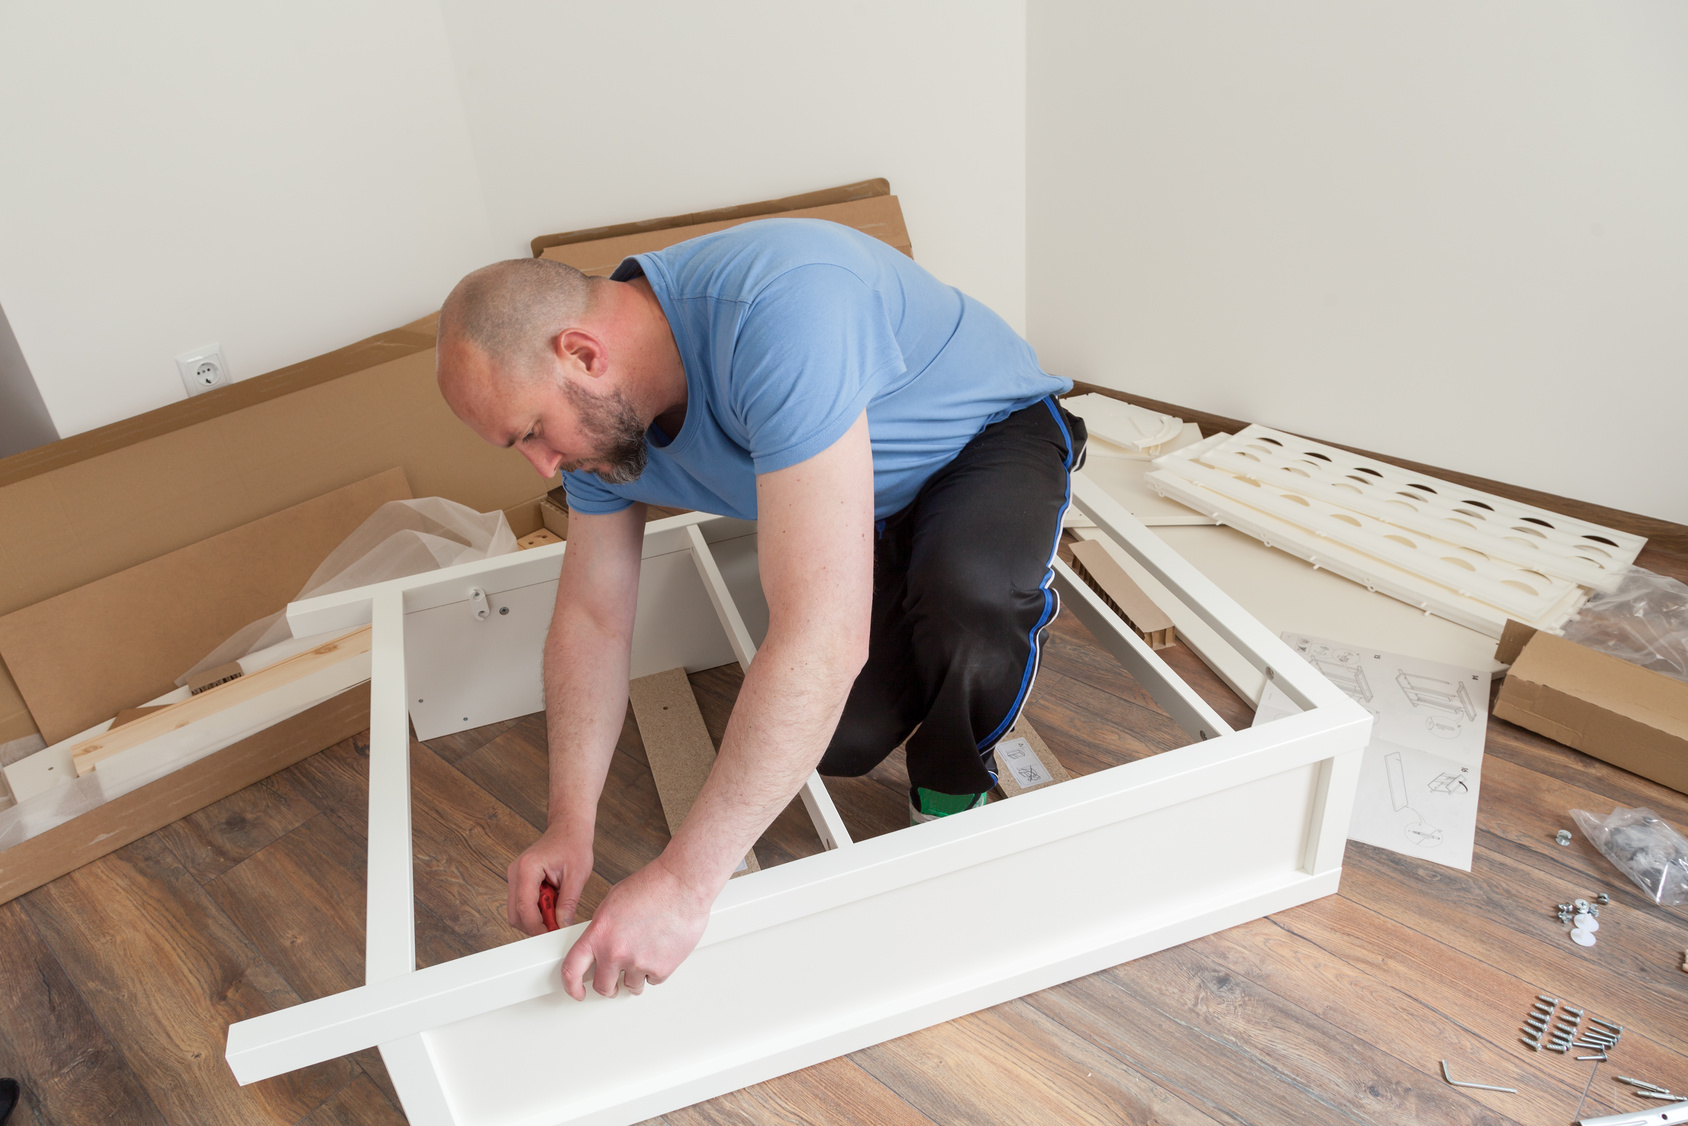 How to Disassemble Furniture The Easy Way Before Moving House